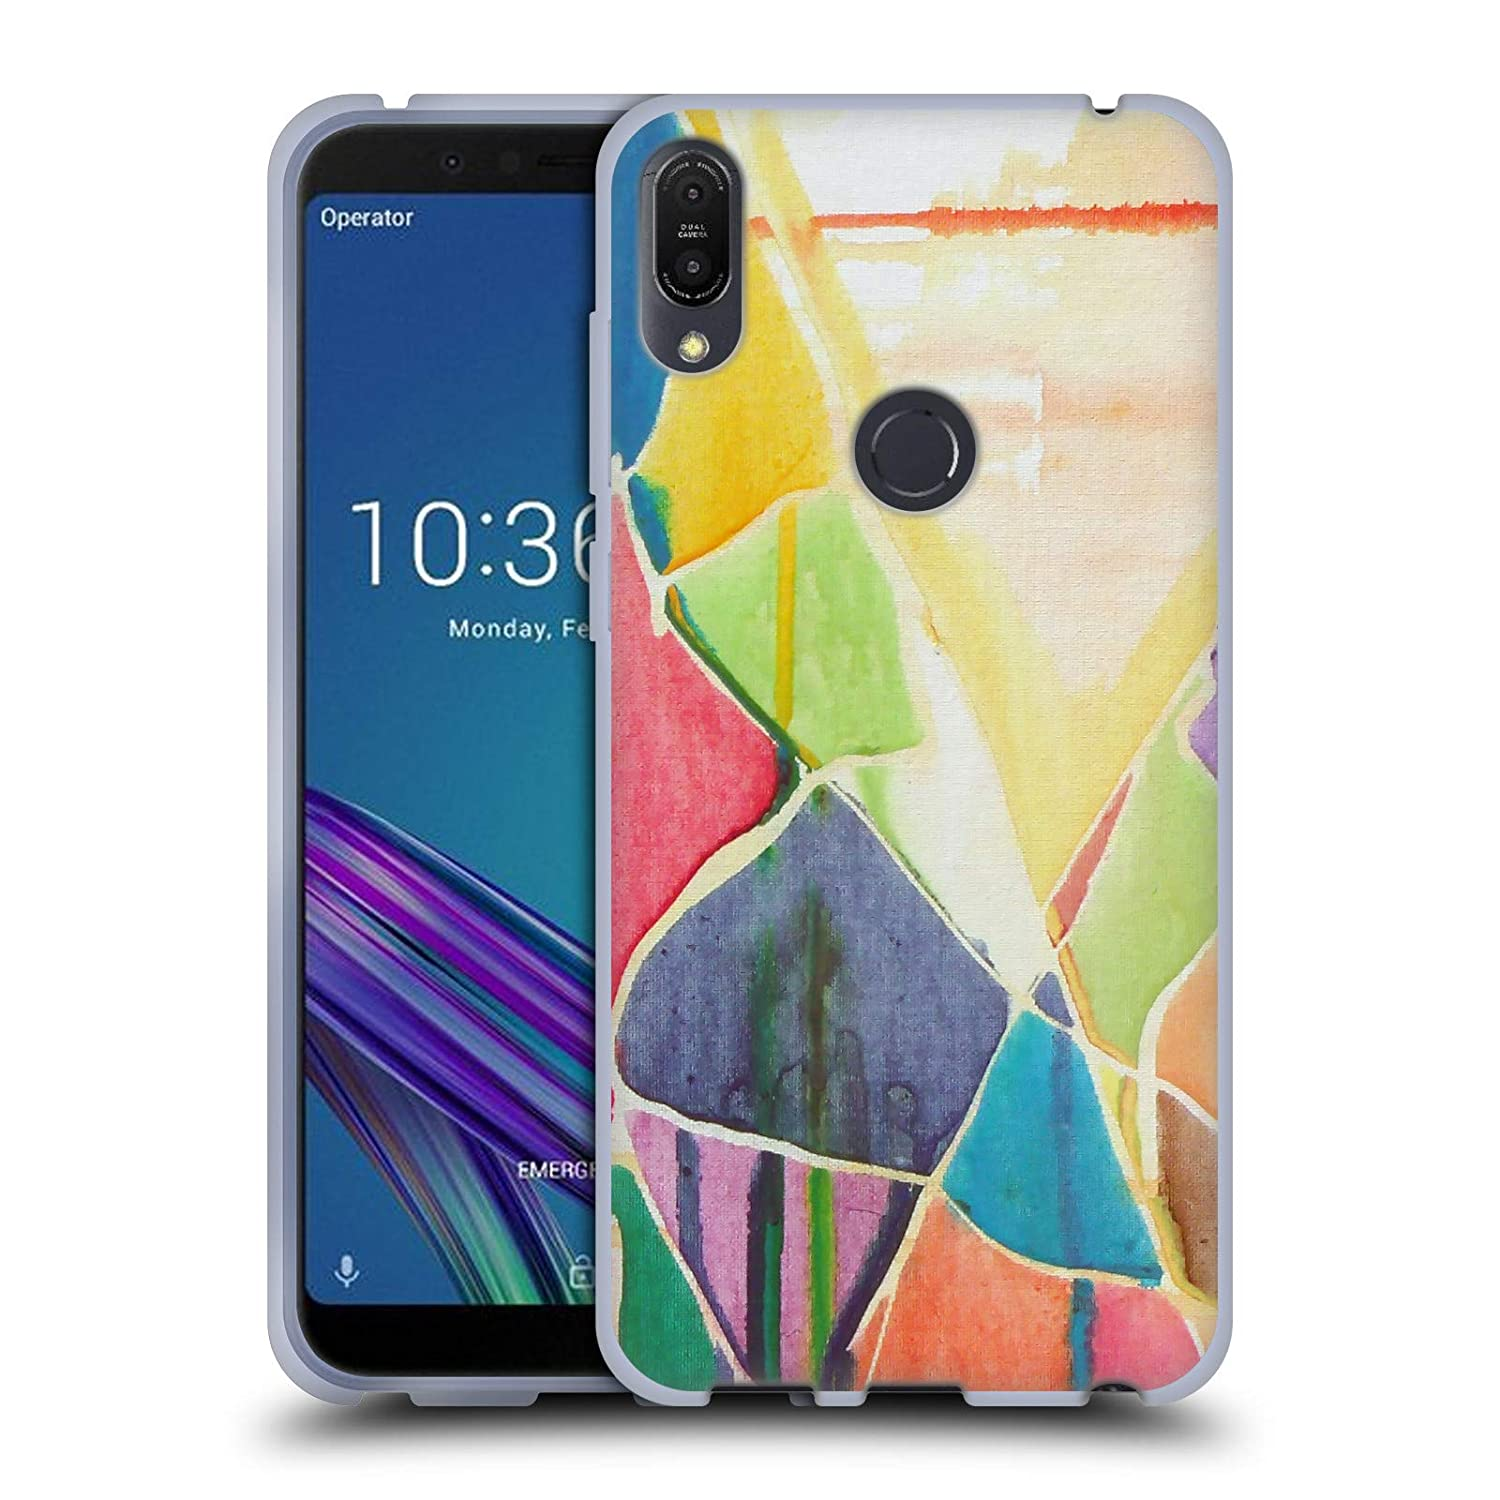 d10fe4f0f7a Amazon.com: Official Lauren Moss Ojos Del Salado Mountains Soft Gel Case for  Zenfone Max Pro (M1) ZB601KL: Cell Phones & Accessories